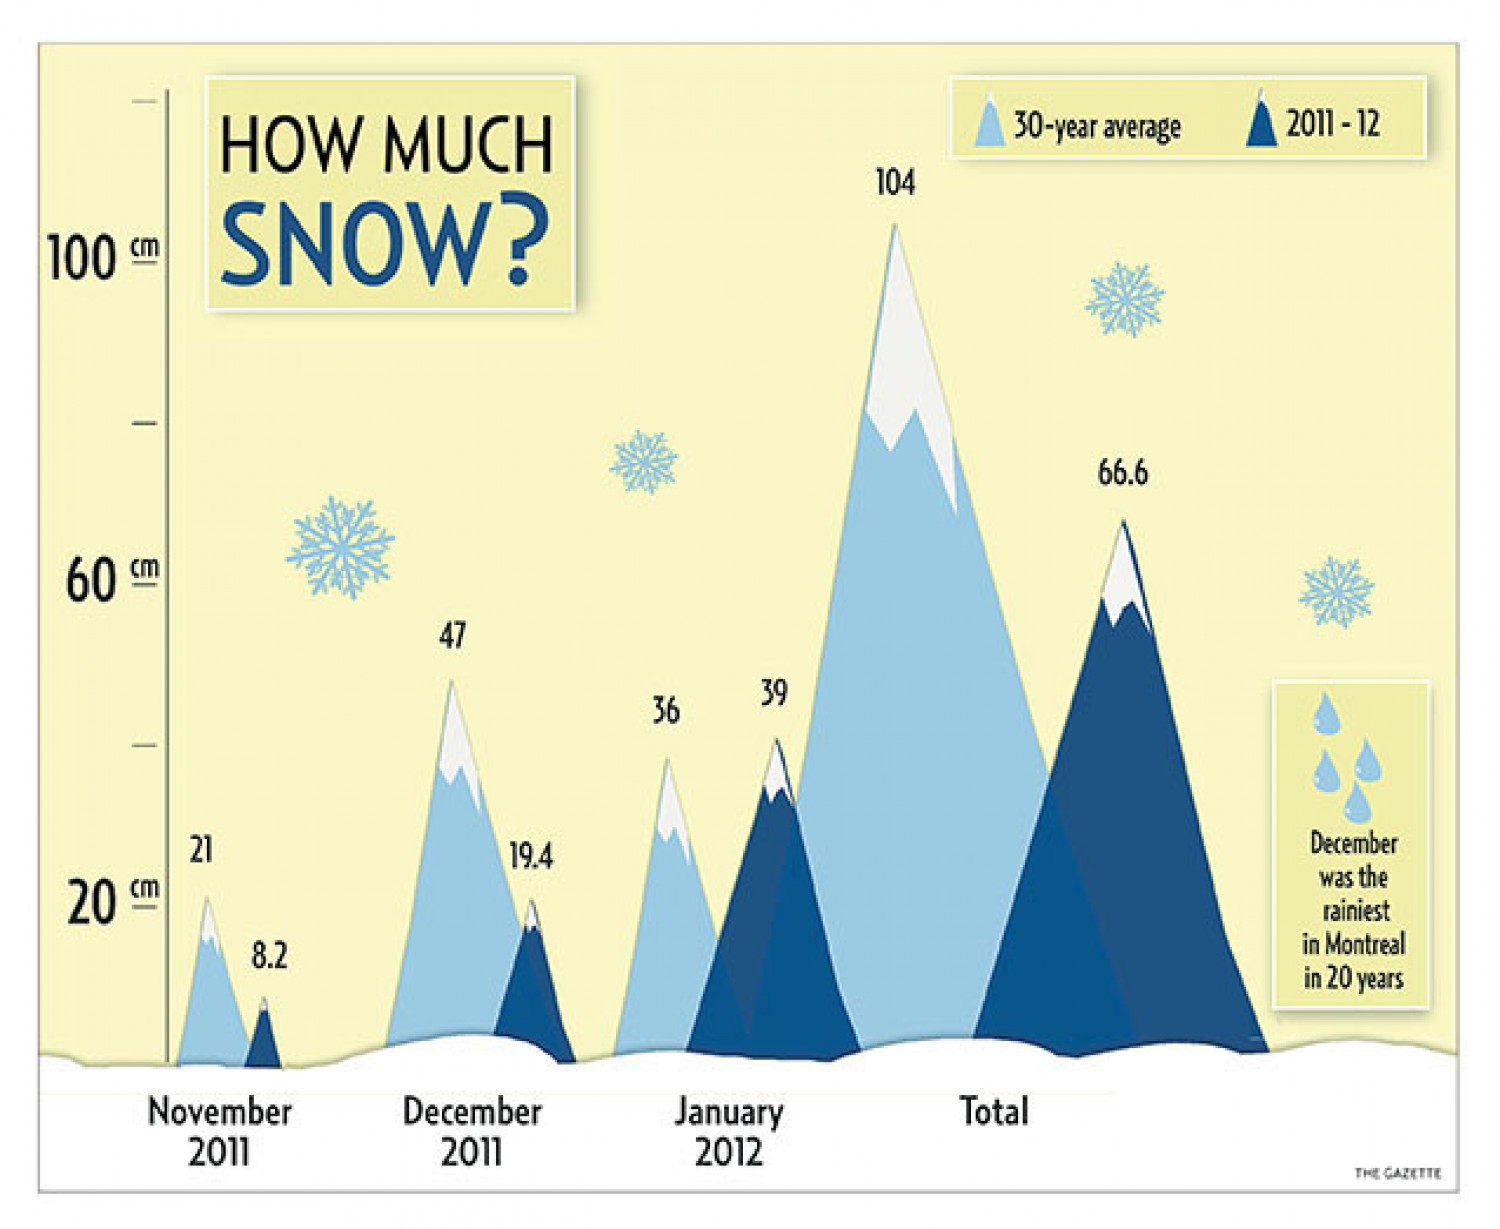 How much snow? Infographic